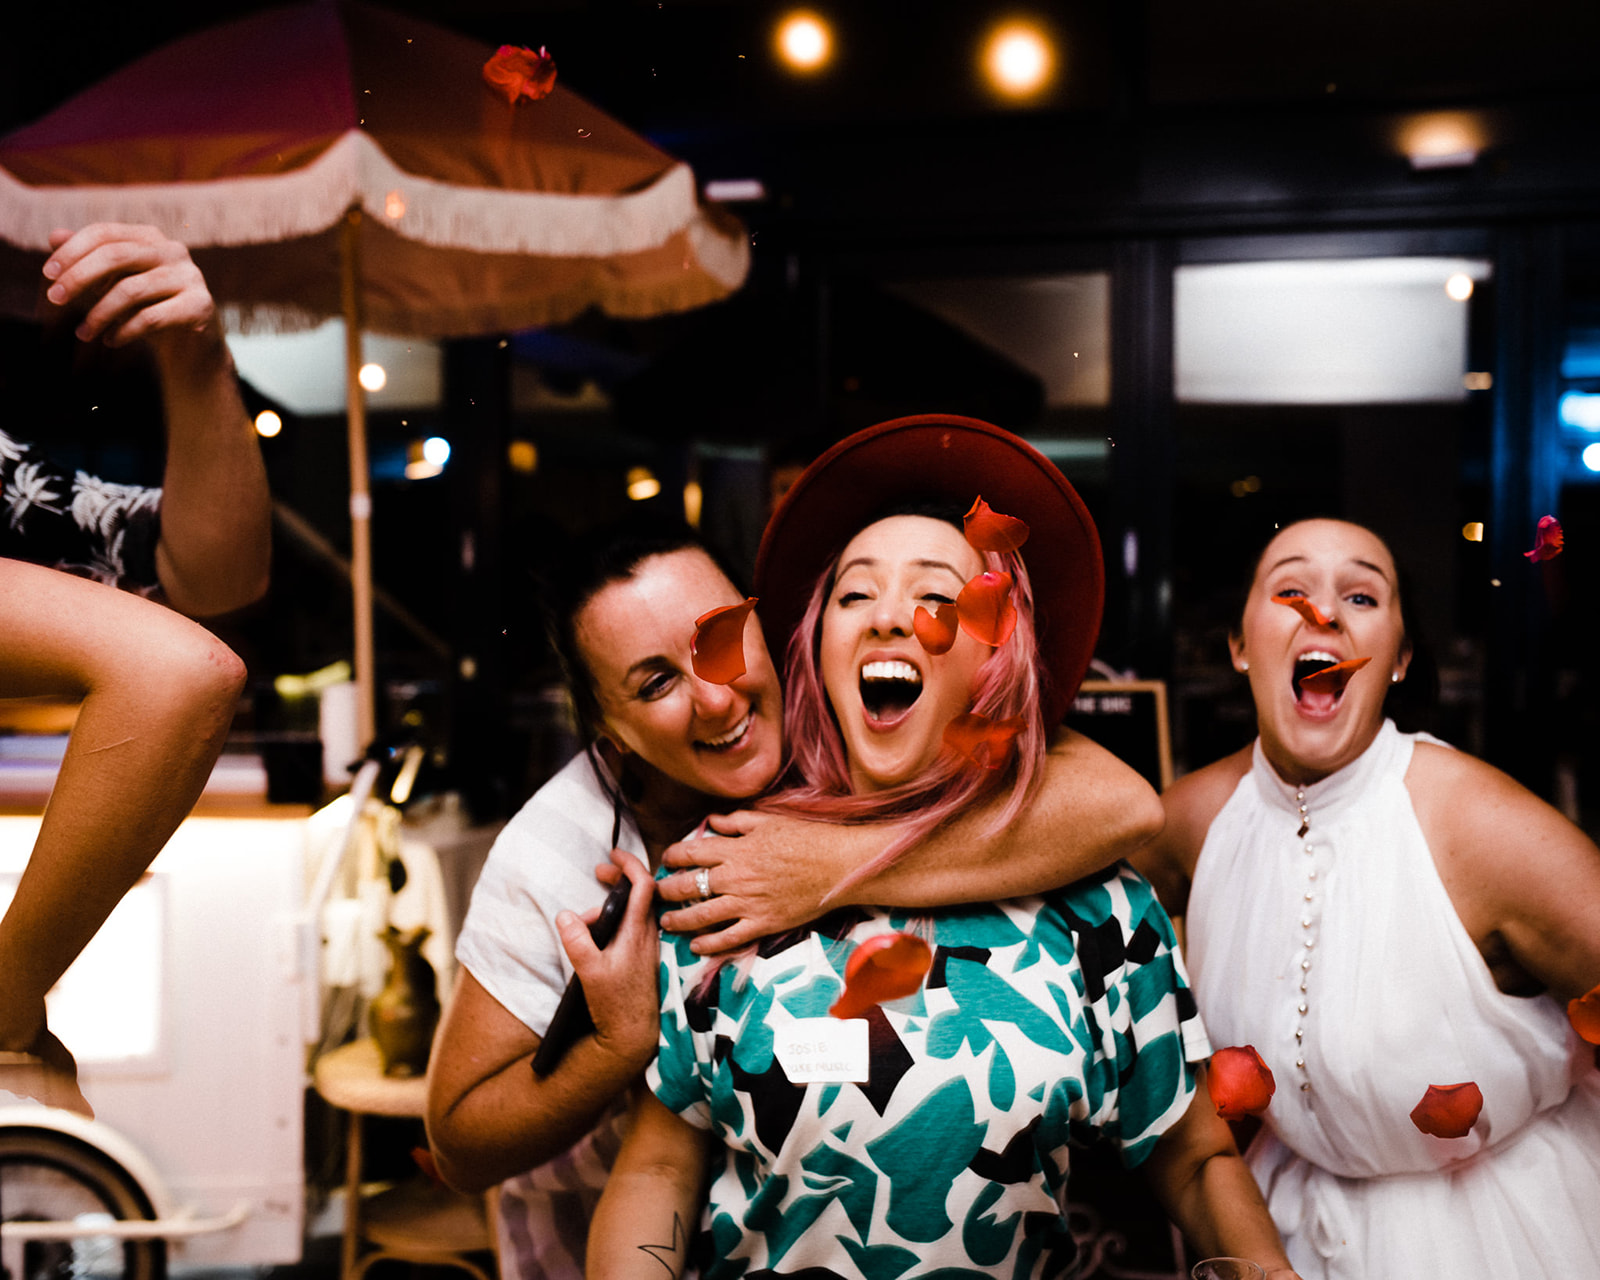 Nsw Covid Restrictions Eased For Weddings To Allow 50 Guests On The Dance Floor Event Entertainers